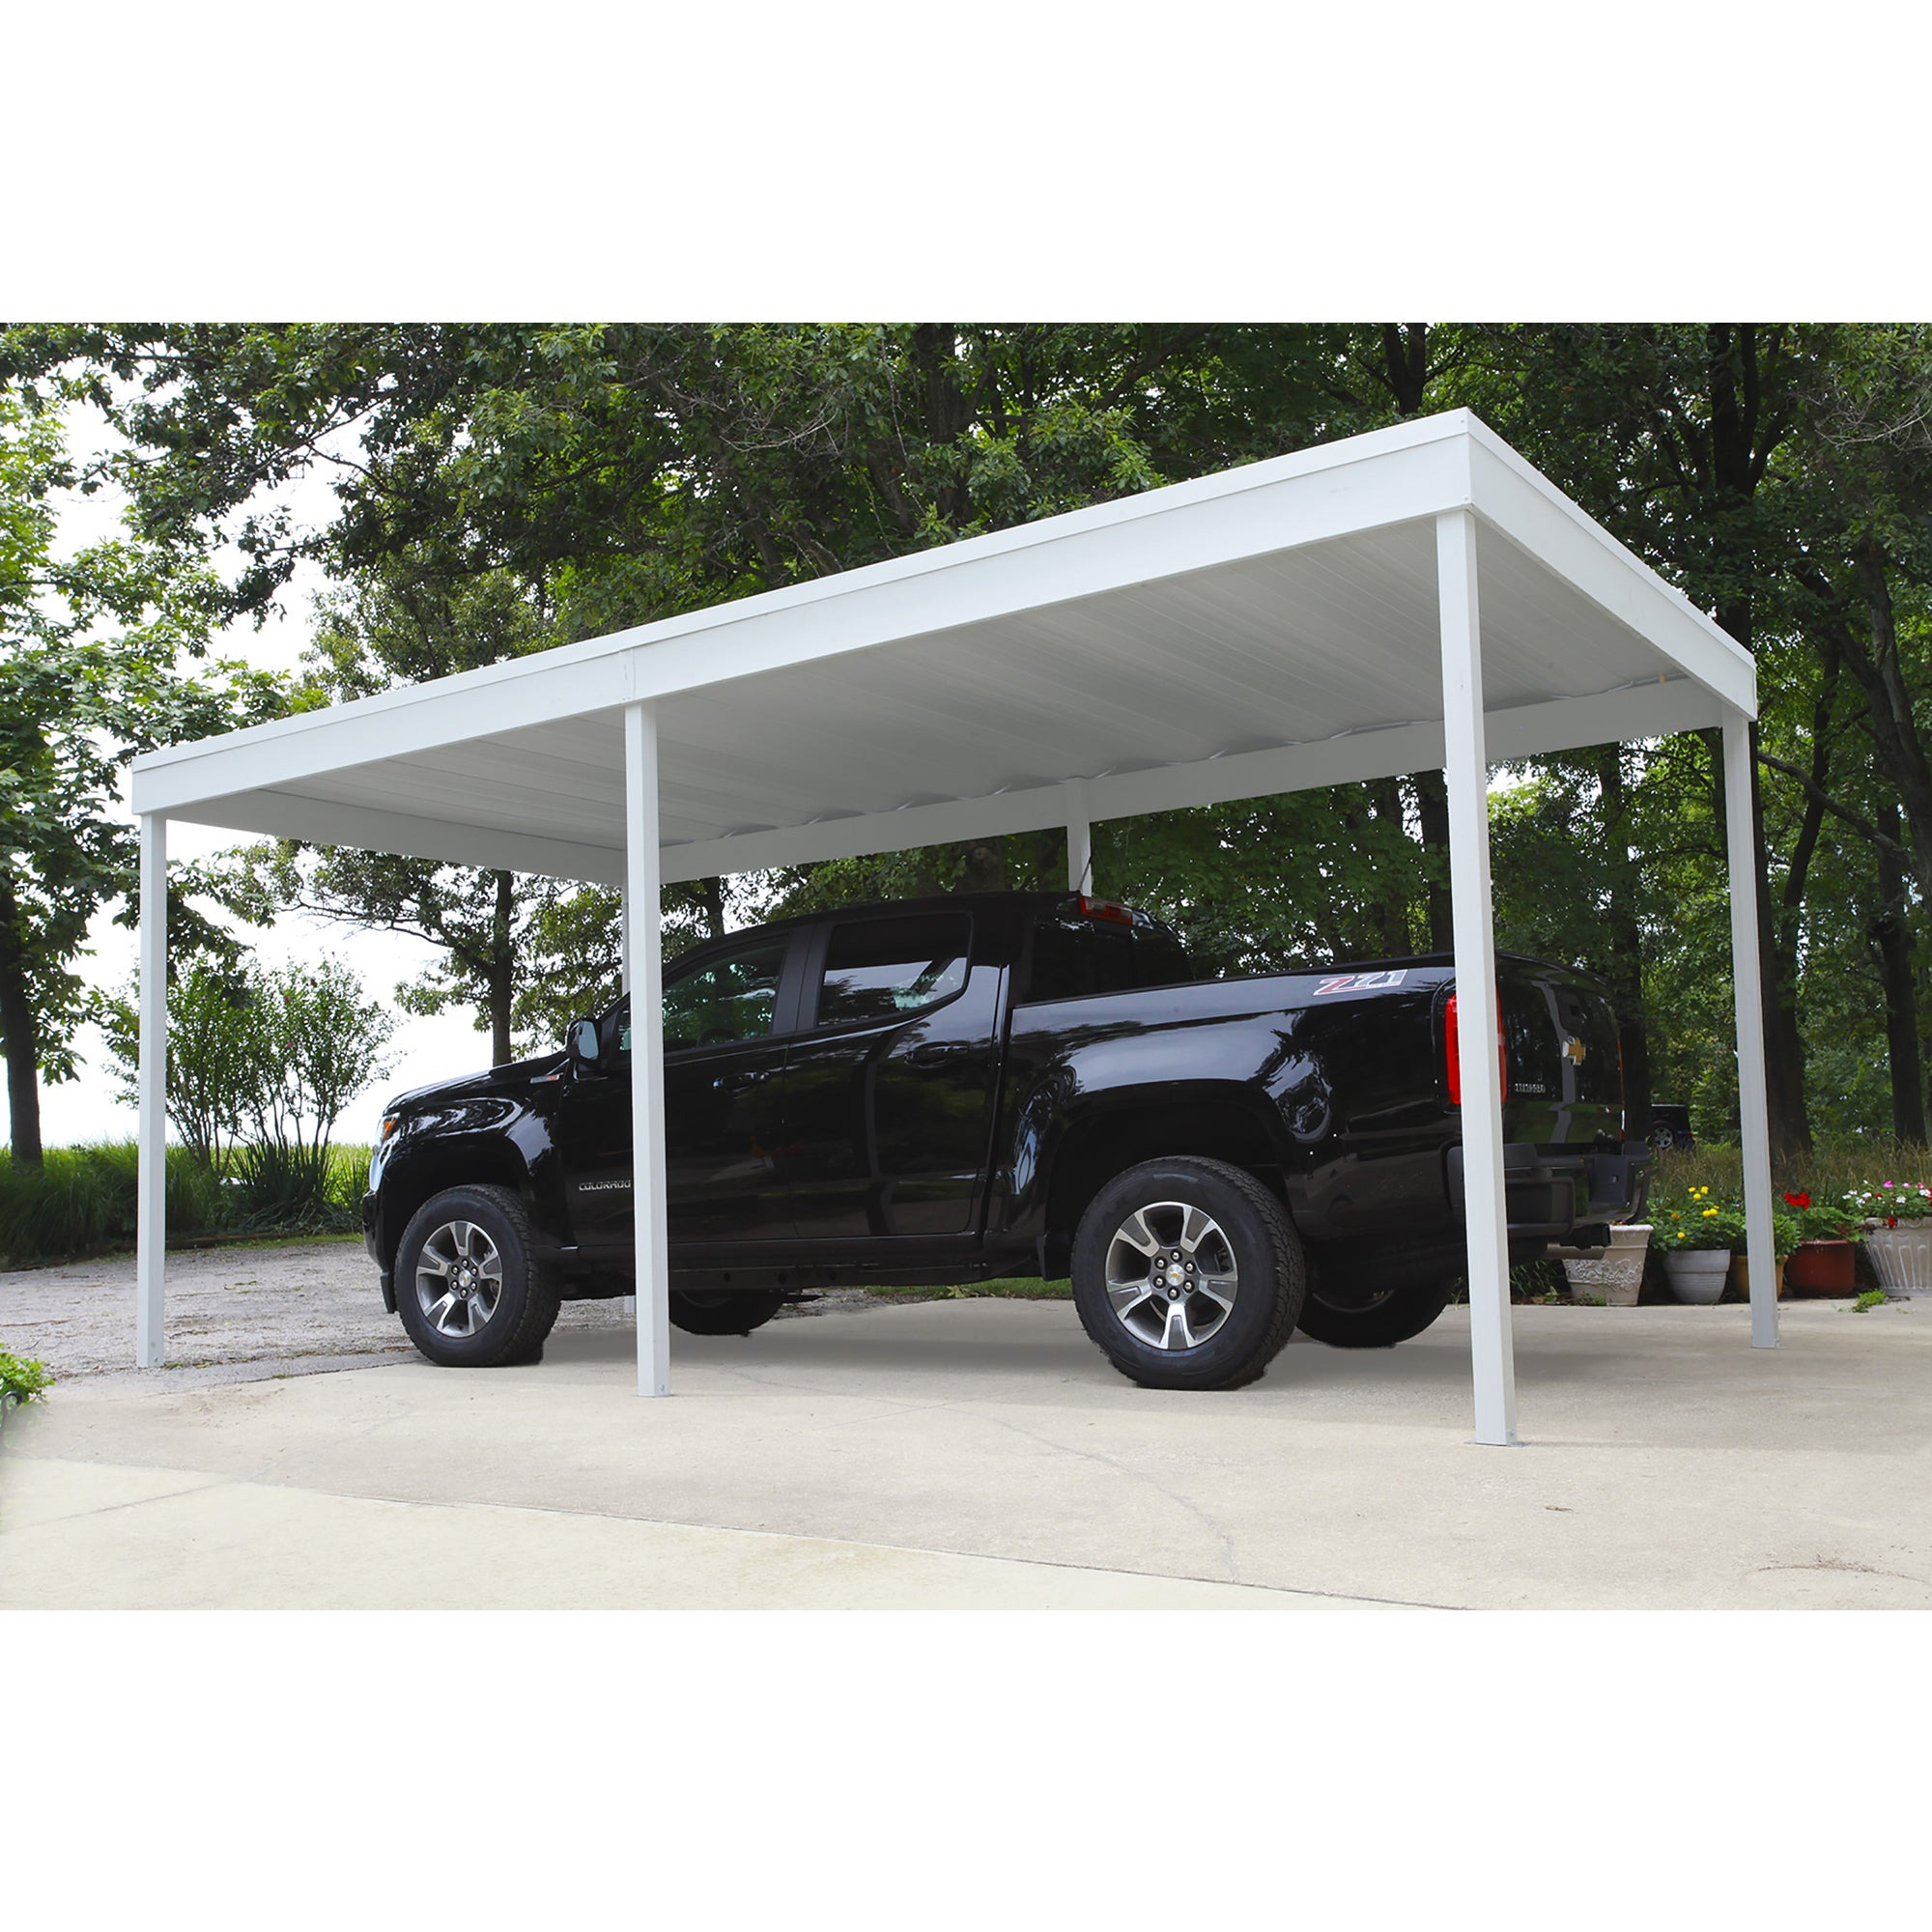 Arrow Group Shed Free Standing Car Port, 10' Wide x 10' L...